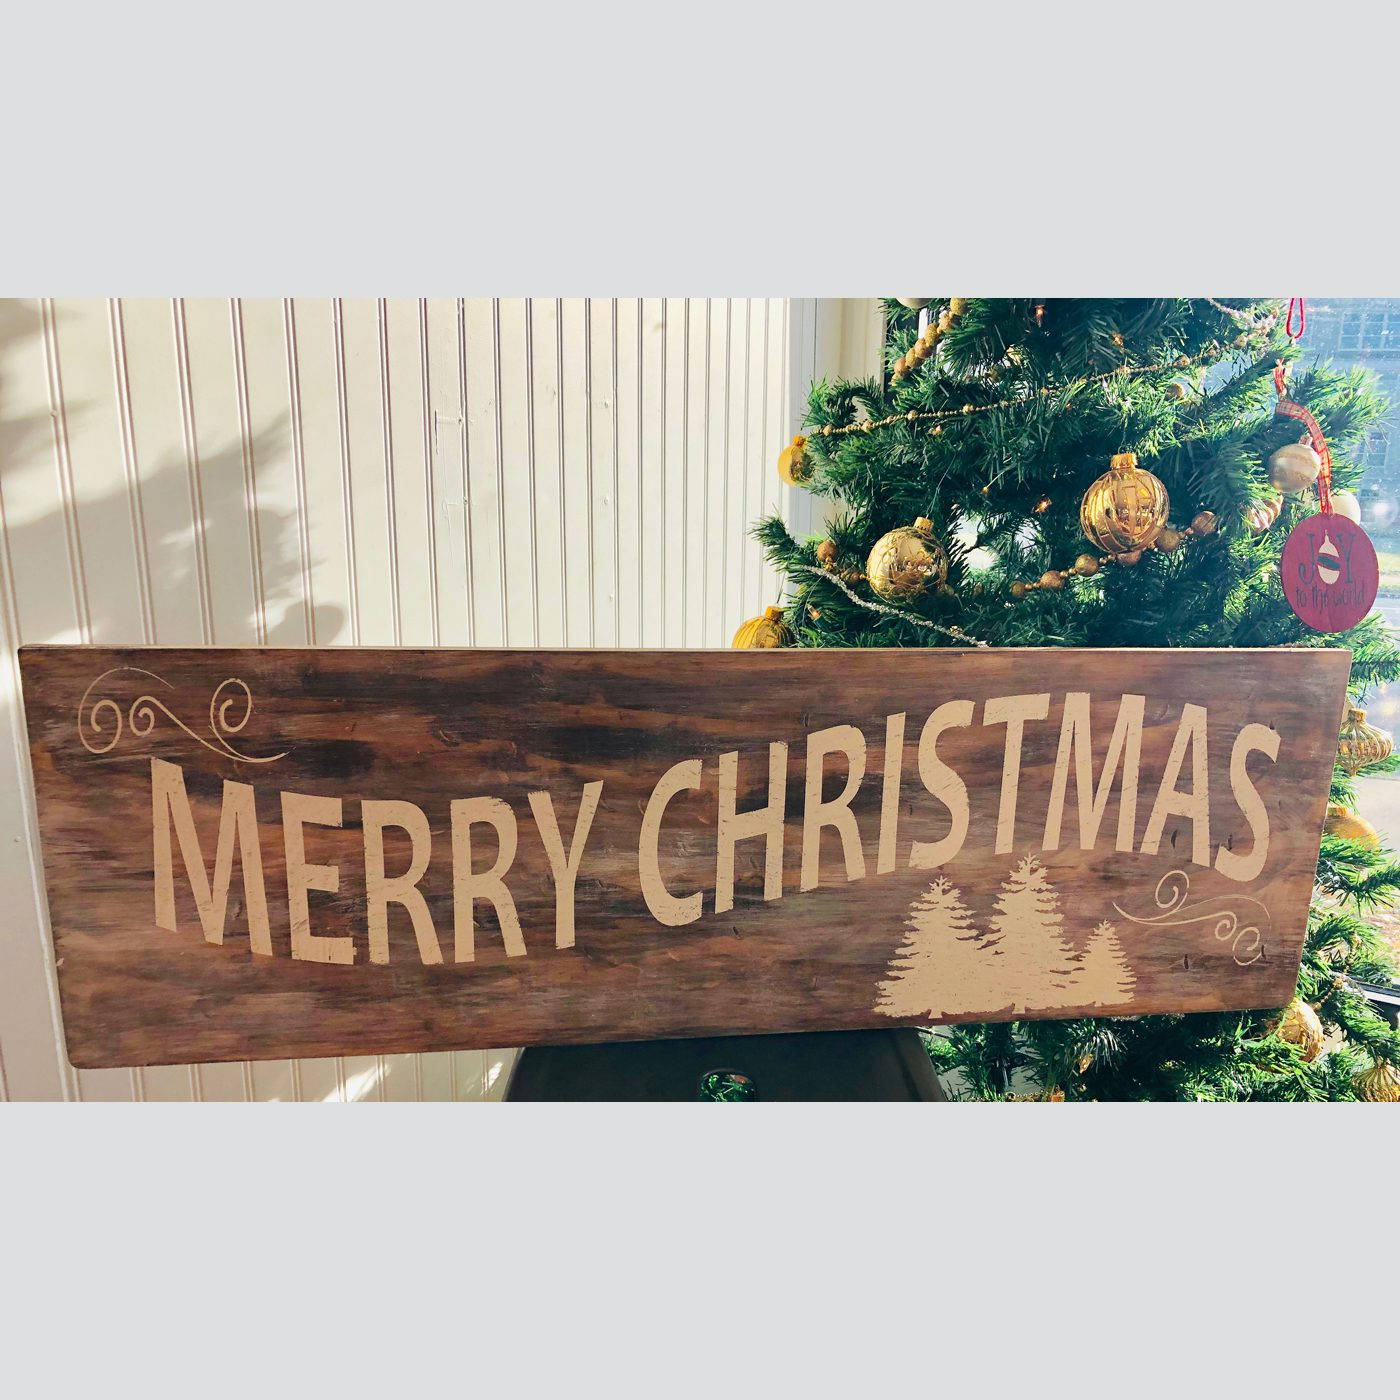 Merry Christmas with Trees DIY wood sign